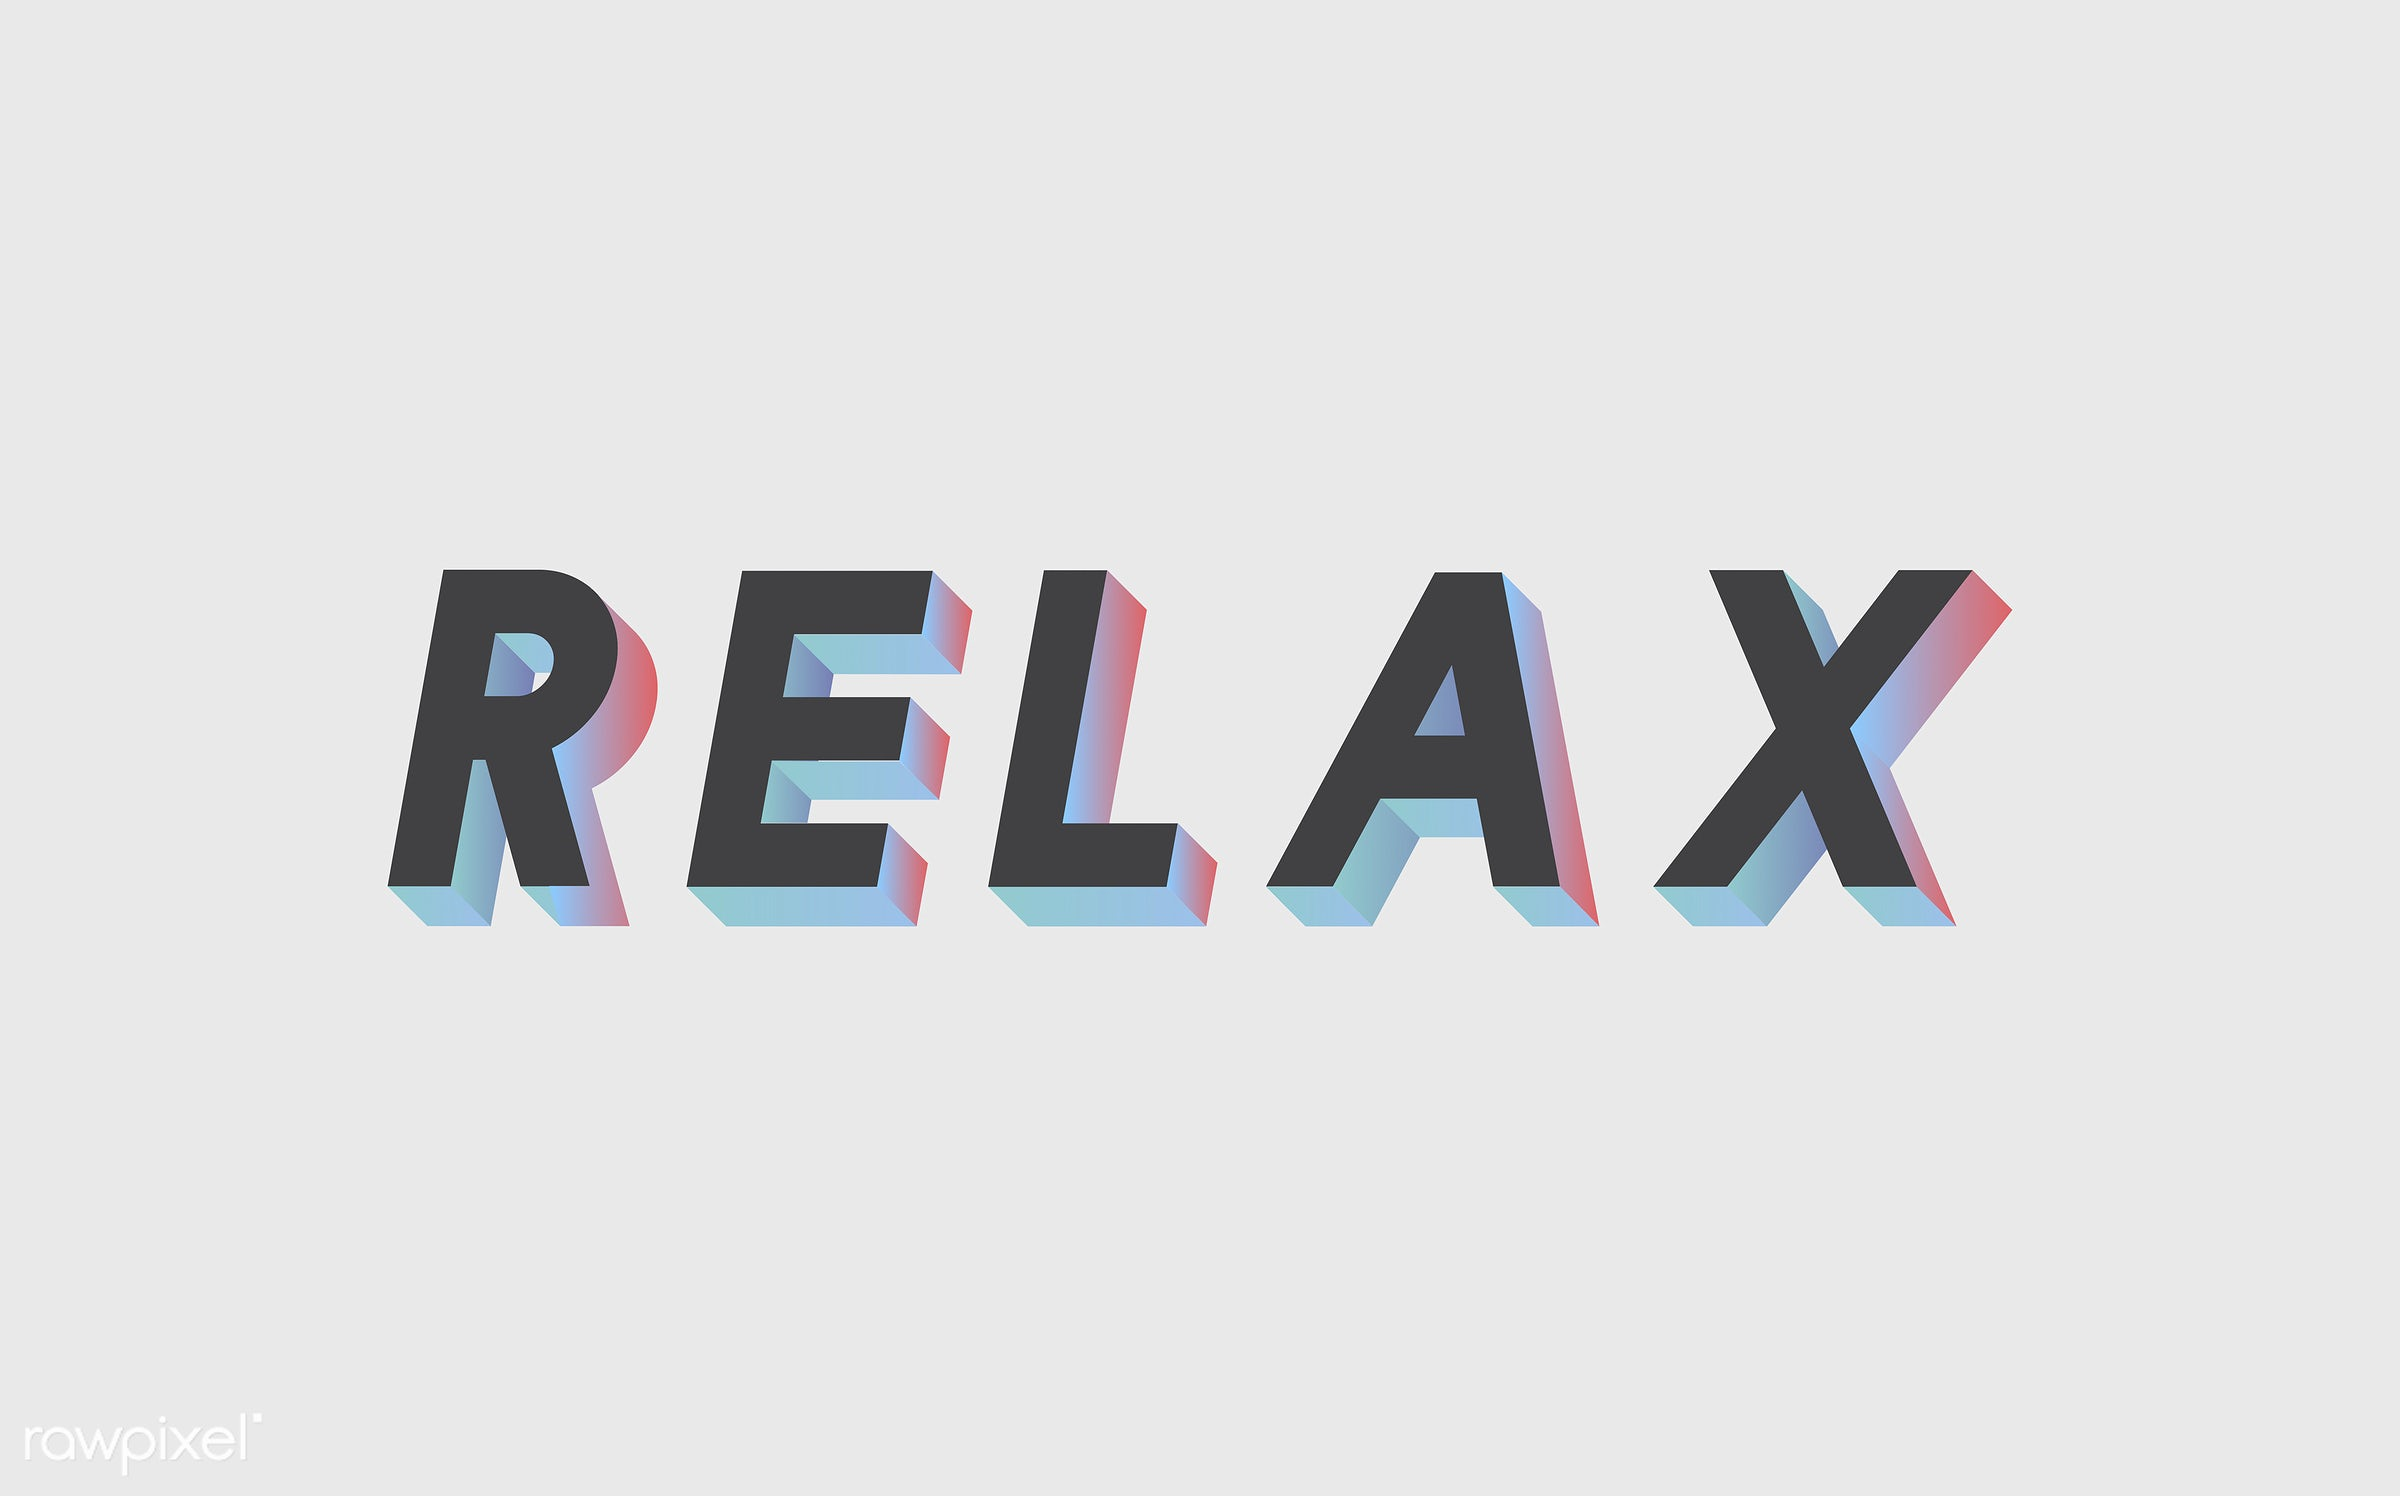 word, 3d, black, colorful, graphic, illustration, neon, relax, relaxation, relaxing, three dimensional, vector, white